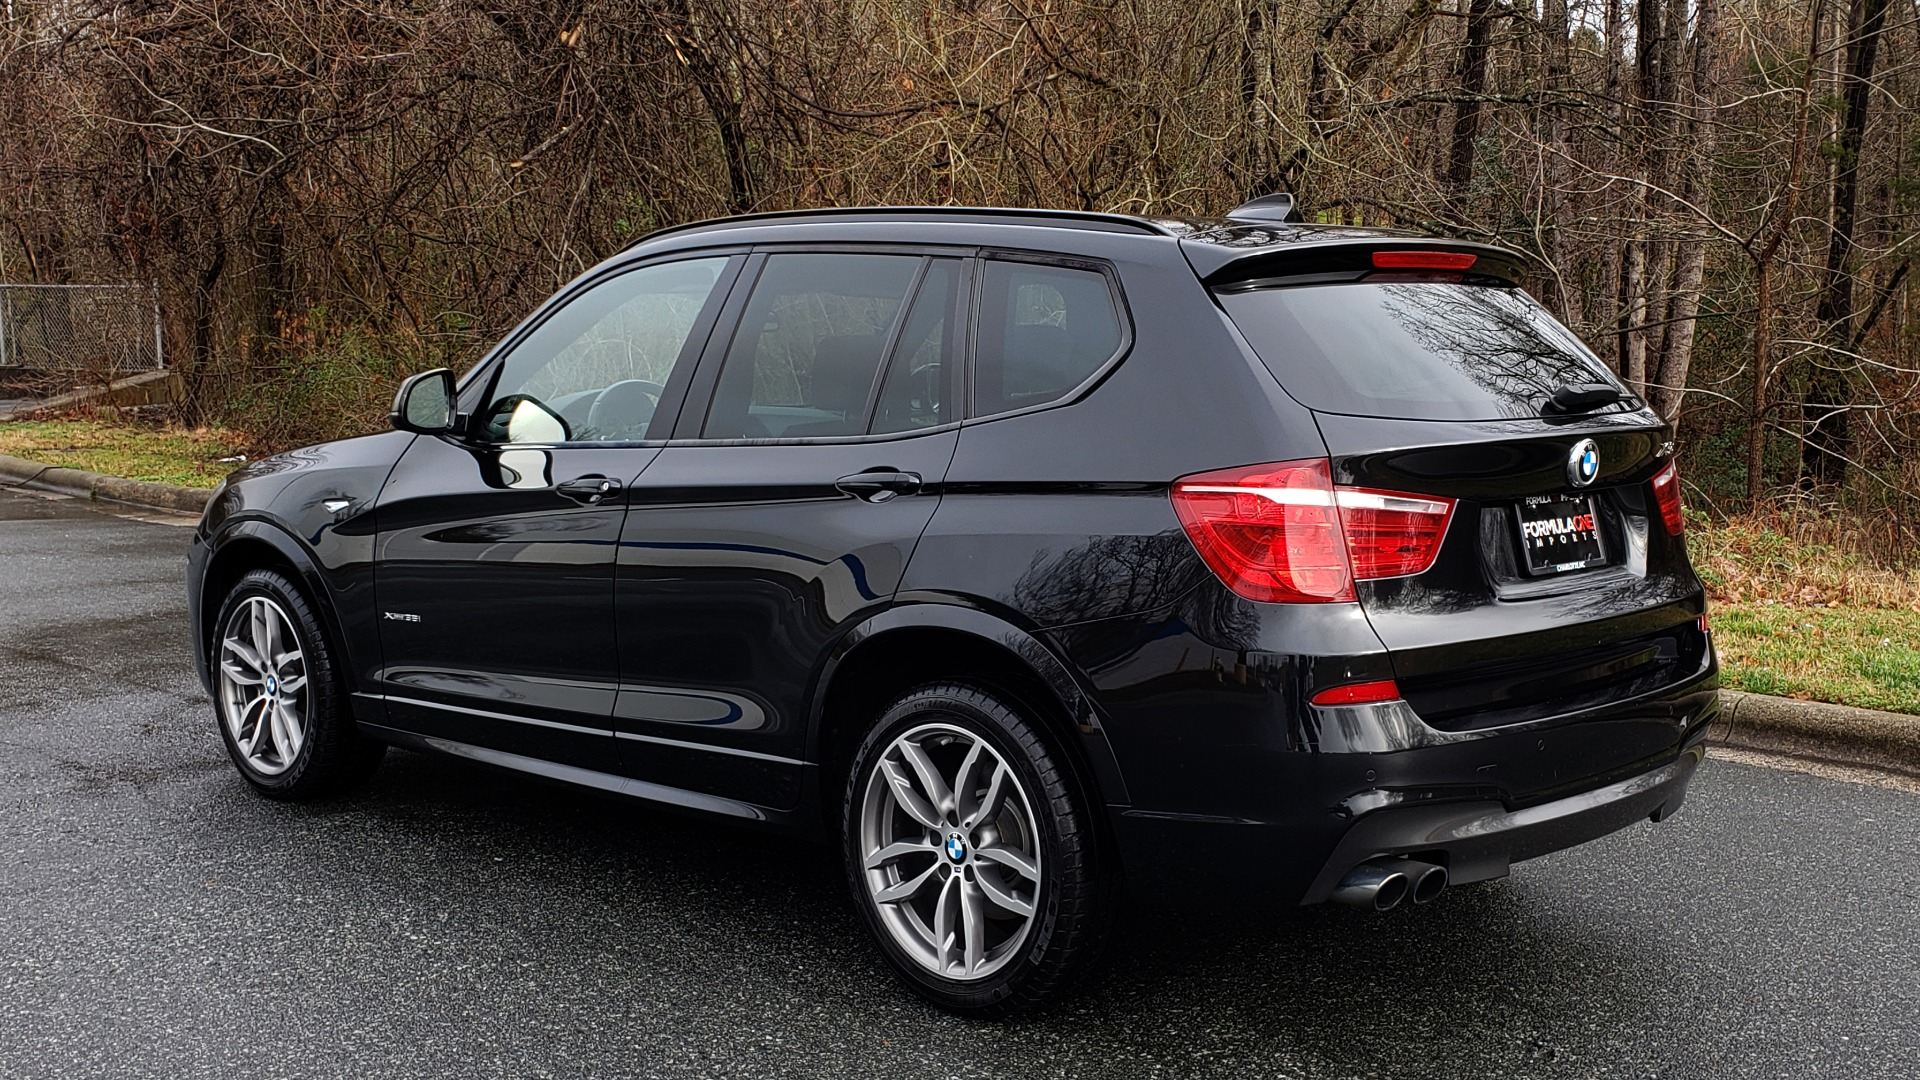 Used 2017 BMW X3 XDRIVE35I M-SPORT / DRVR ASST PLUS / TECHNOLOGY / HUD / BLIND SPOT for sale Sold at Formula Imports in Charlotte NC 28227 3